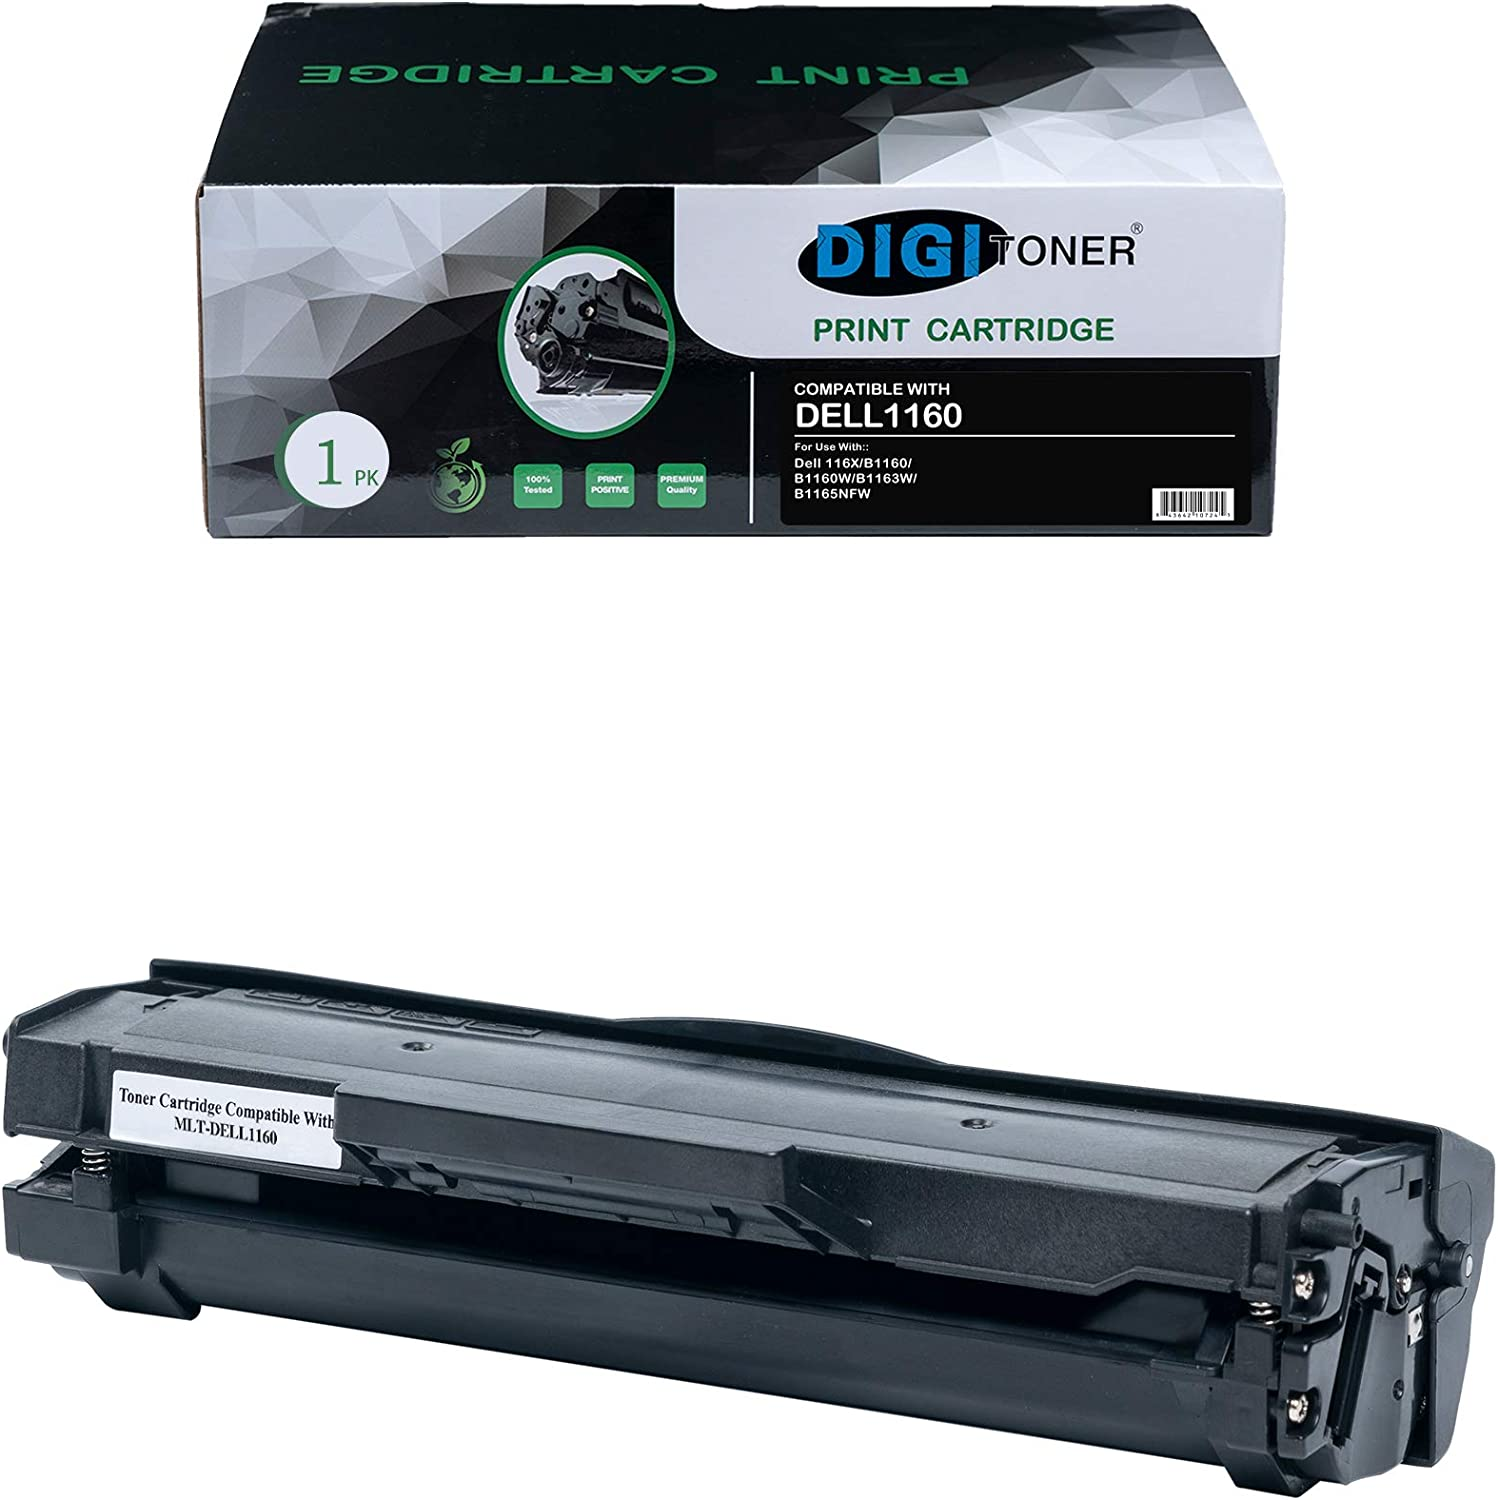 DIGITONER Compatible DELL1160 DELL B1160 DELL1165 dell 1160 Toner Cartridge – Replacement for Part Numbers 331-7335. YK1PM, HF442 for imageCLASS Dell 1160 B1160 B1160W B1163w B1165nfw– Black [1 Pack]